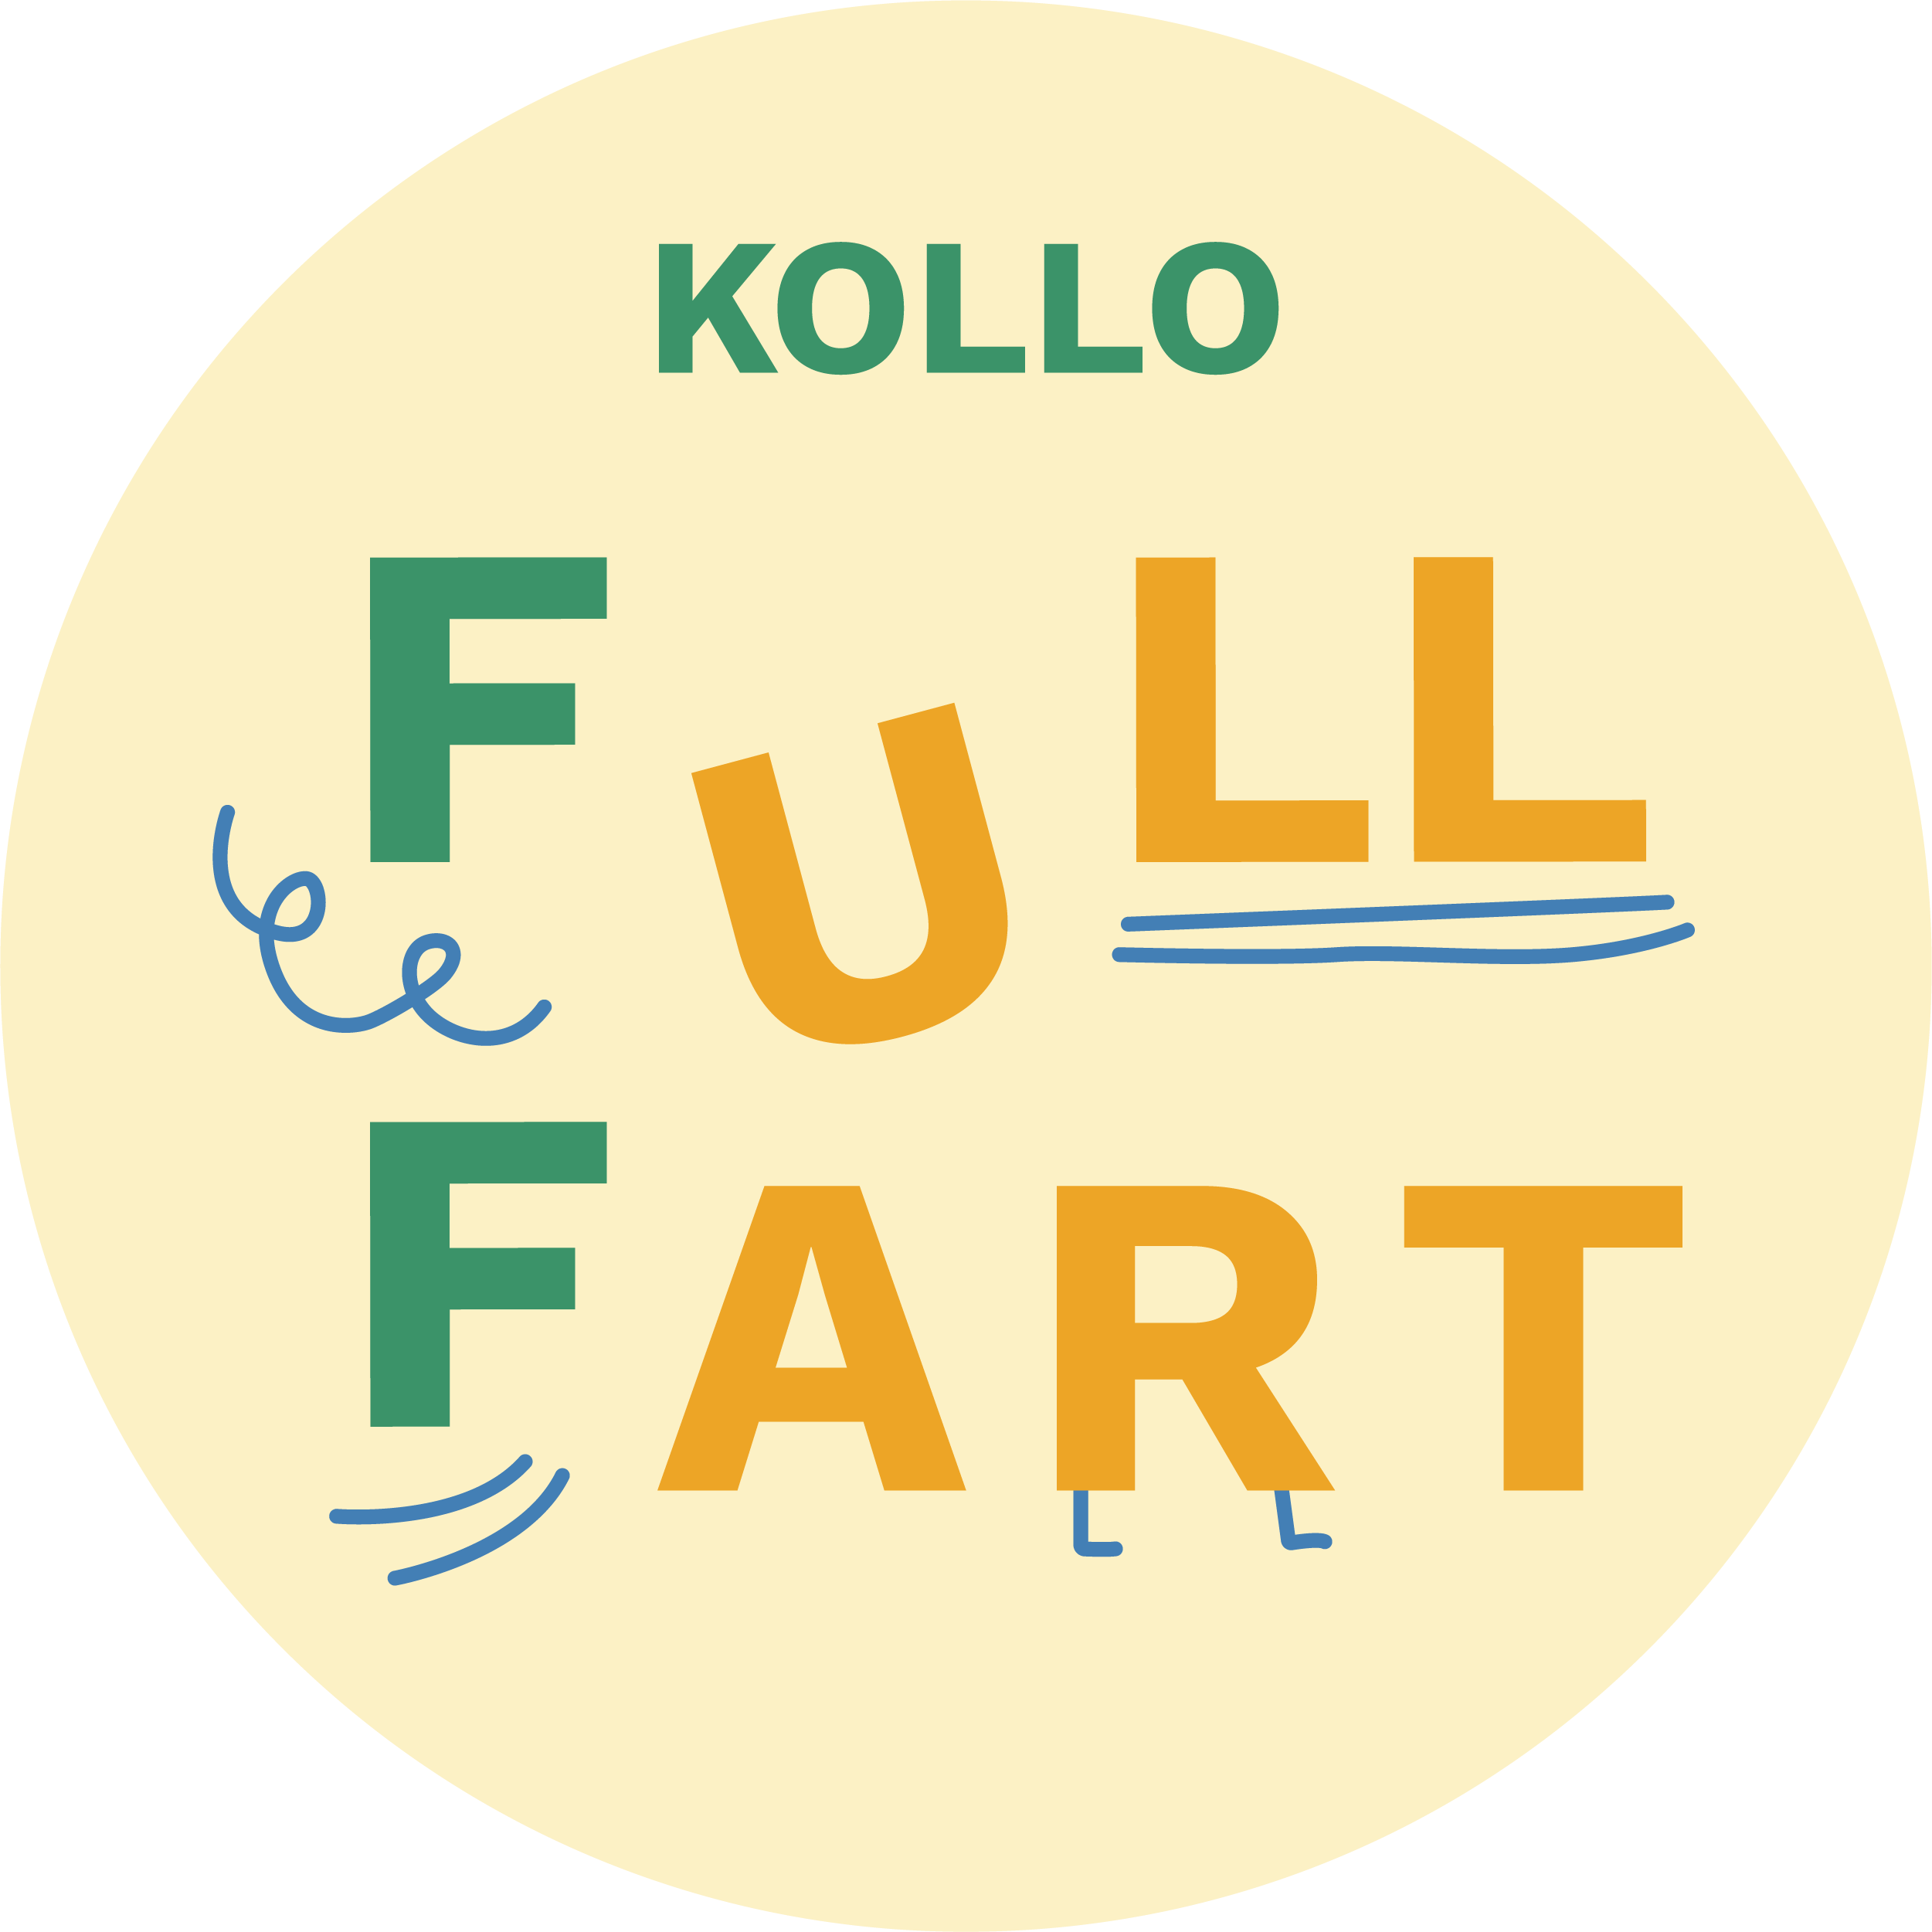 Kollo Full Fart